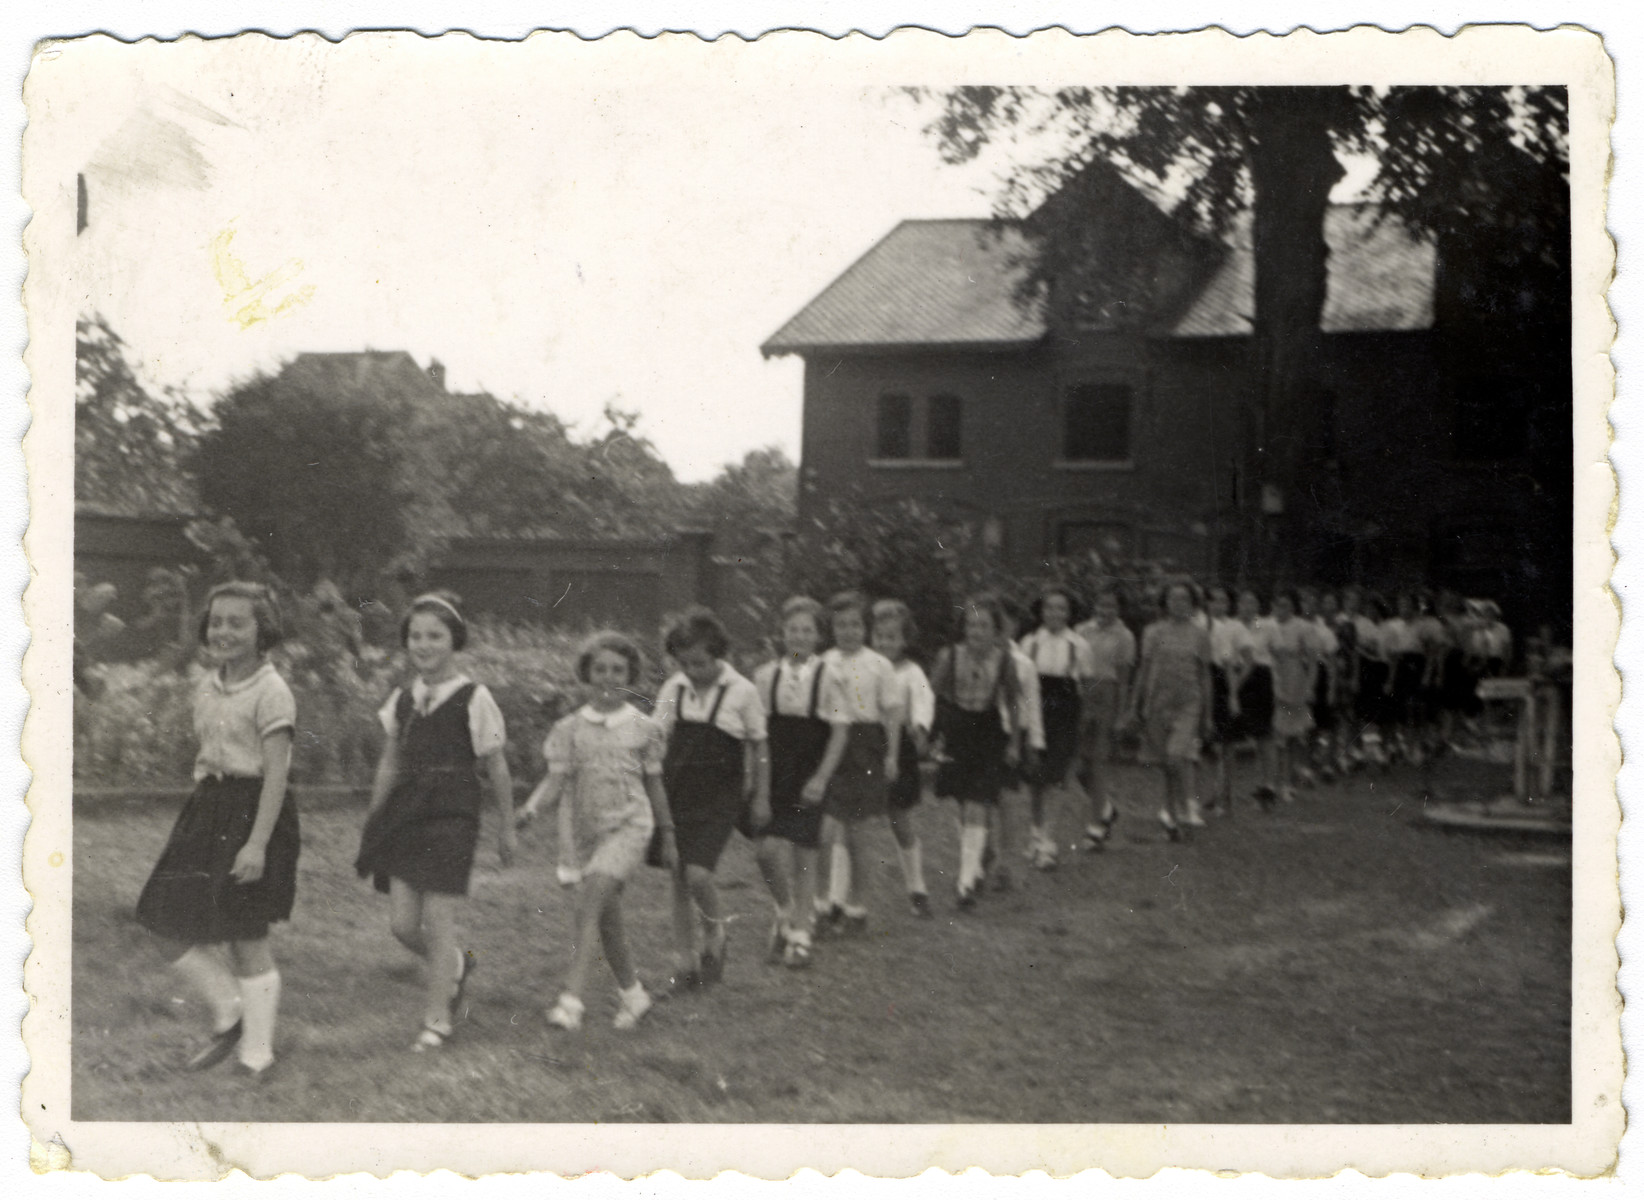 Young boys and girls walk in a line at the Home General Bernheim in Zuen, Belgium, a suburb of Brussels.